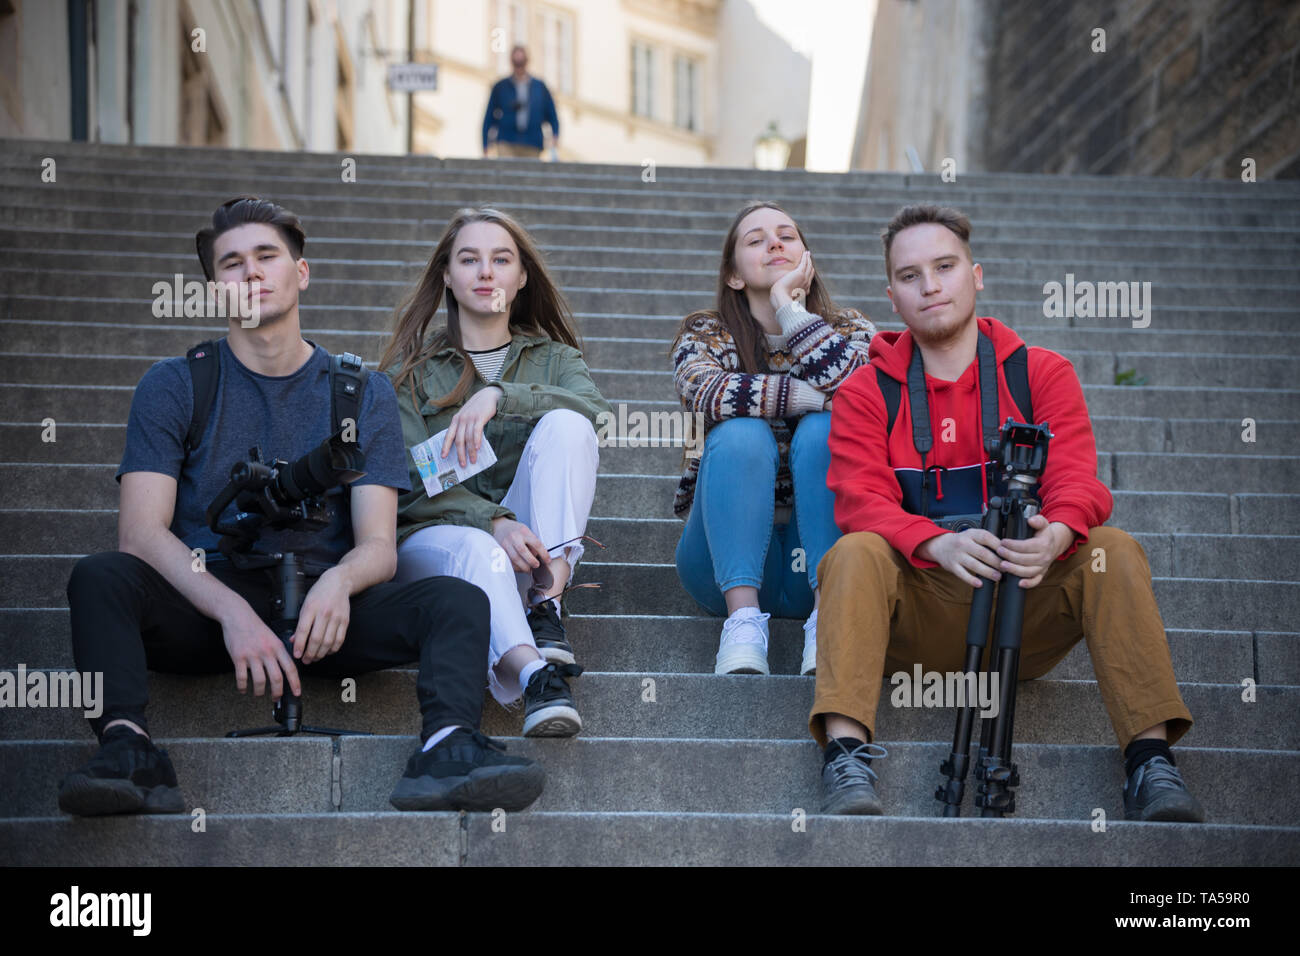 Young traveling people sitting on the stairs. Men holding shooting equipment. Mid shot Stock Photo